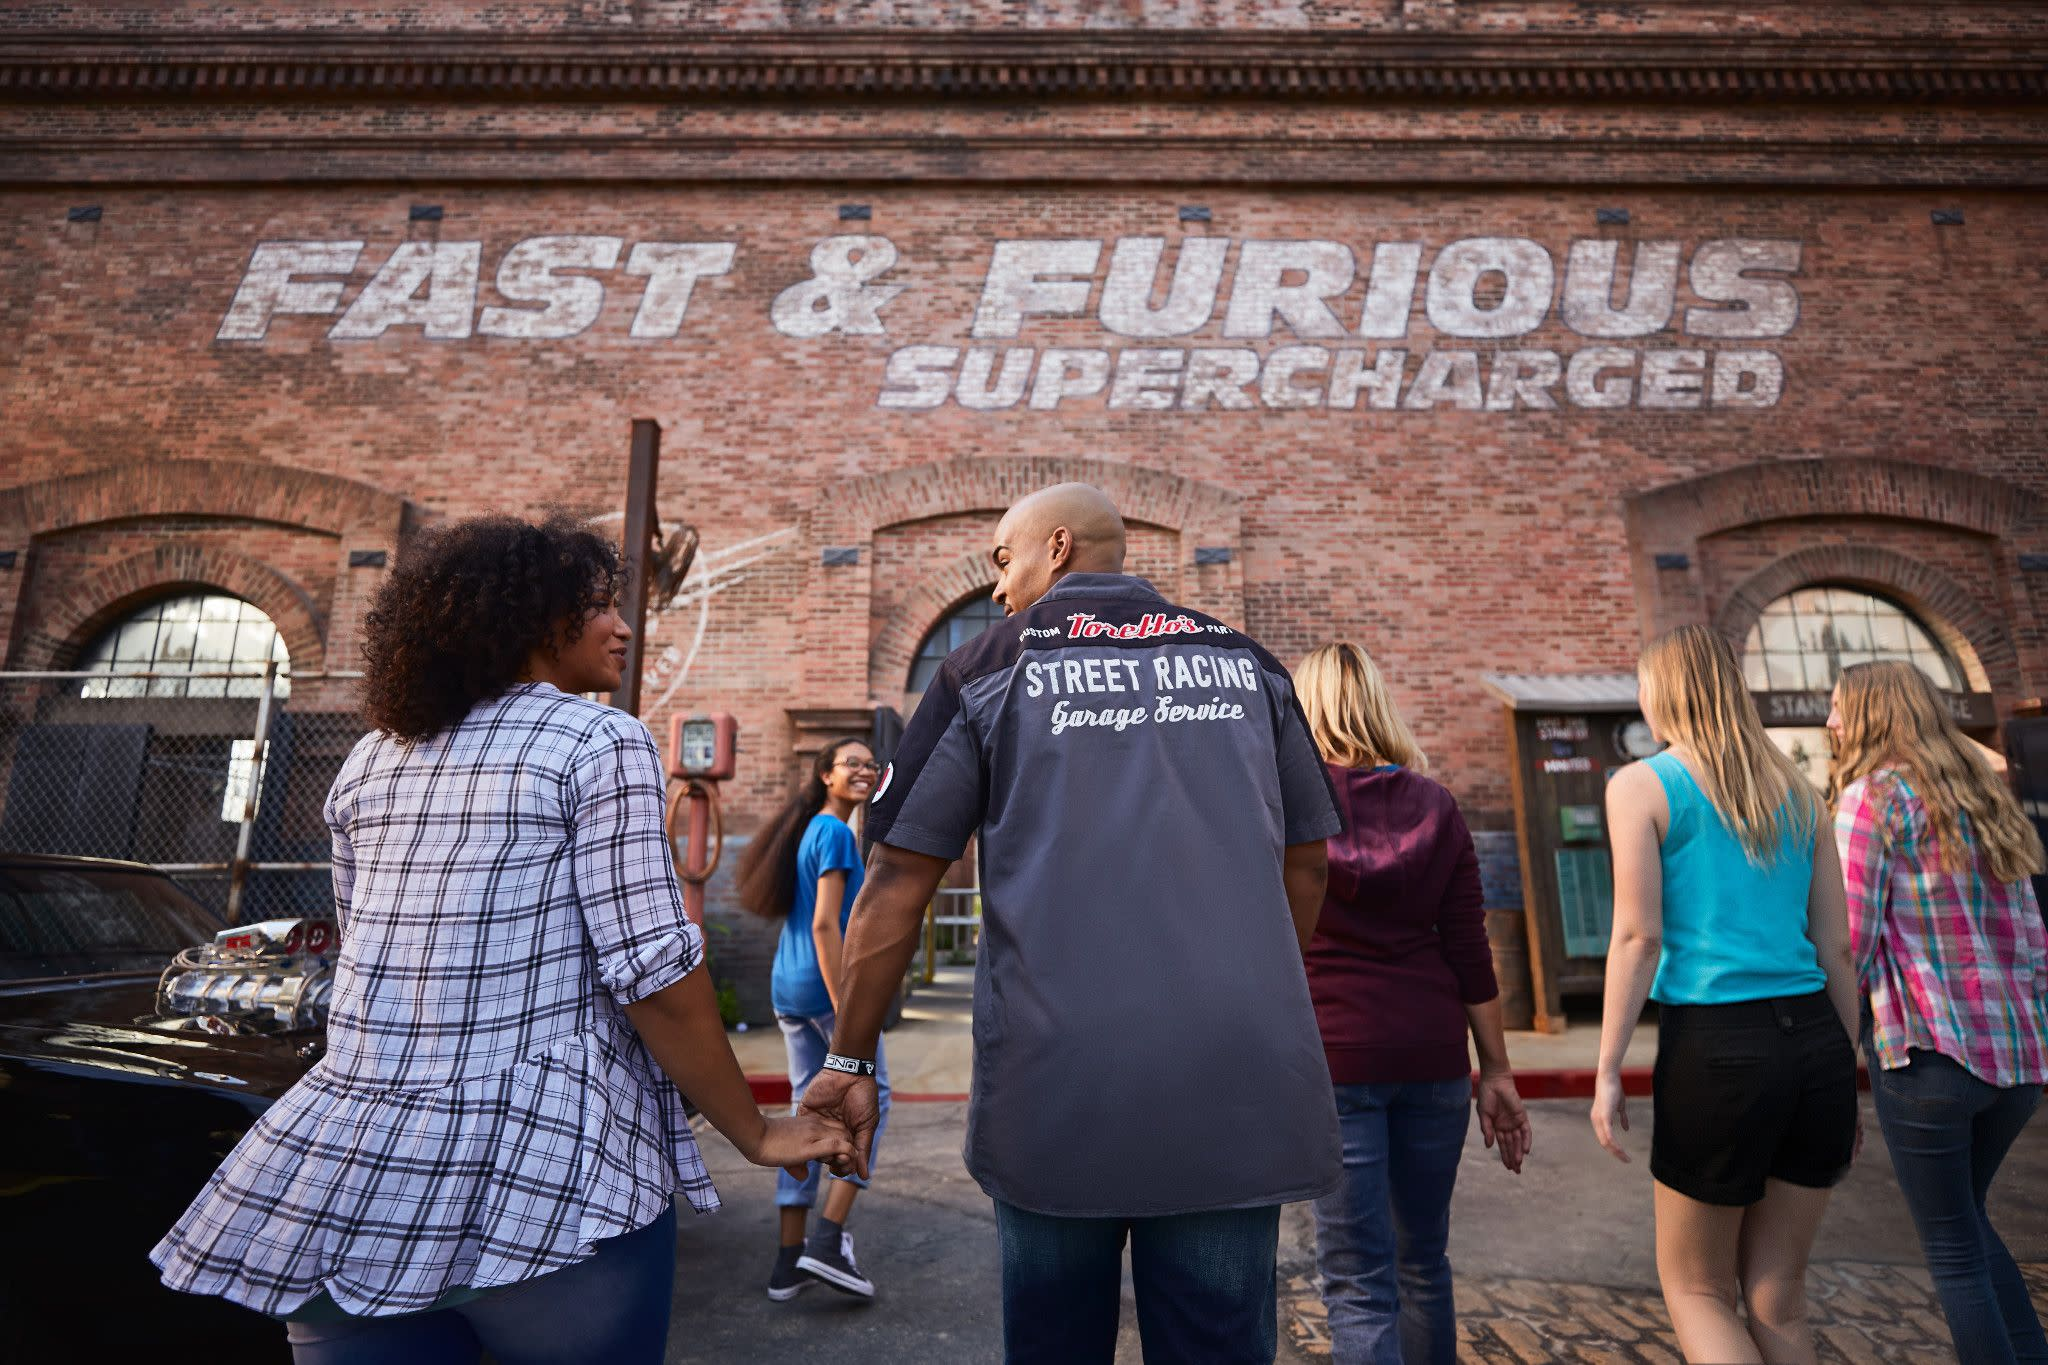 Fast & Furious — Supercharged at Universal Studios Florida in Orlando